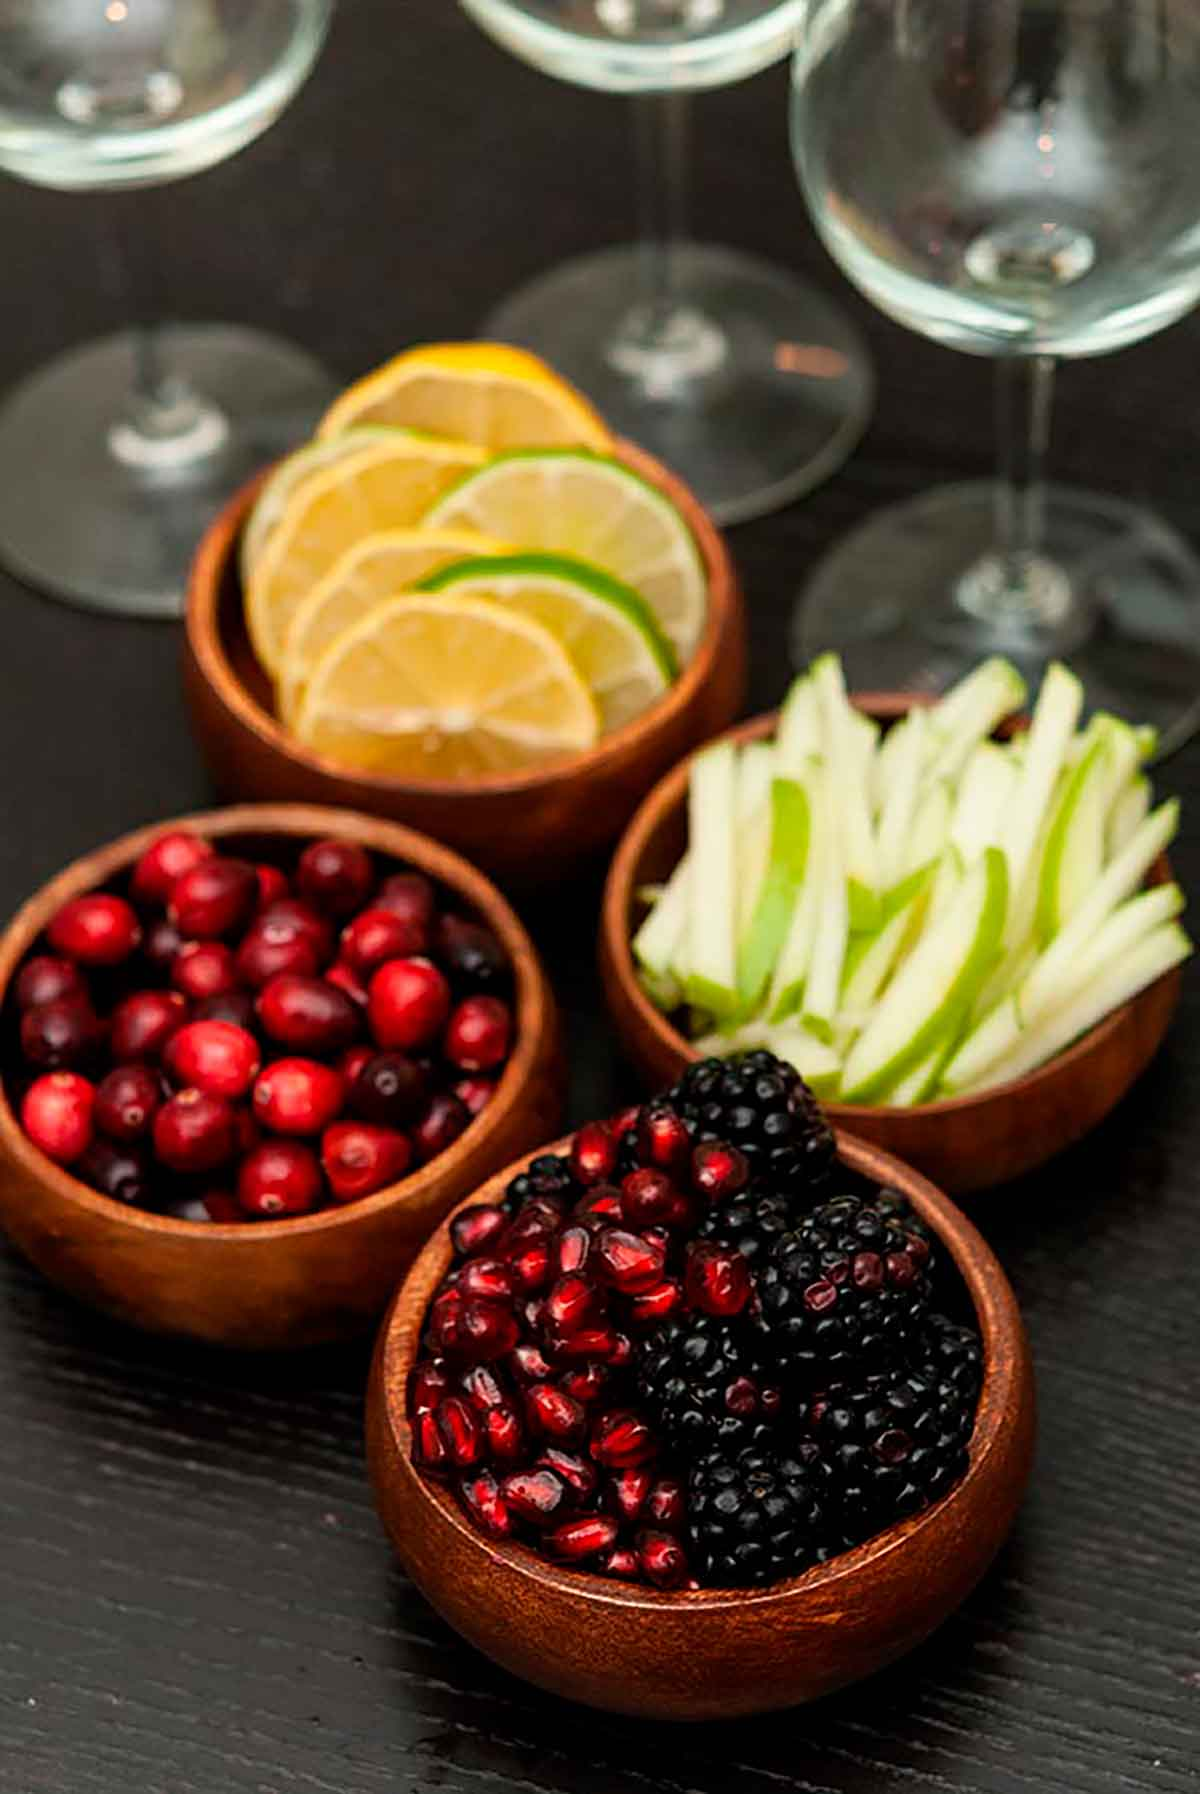 Berries, citrus and apple garnishes in small wooden bowls on a table with 3 empty wine glasses.